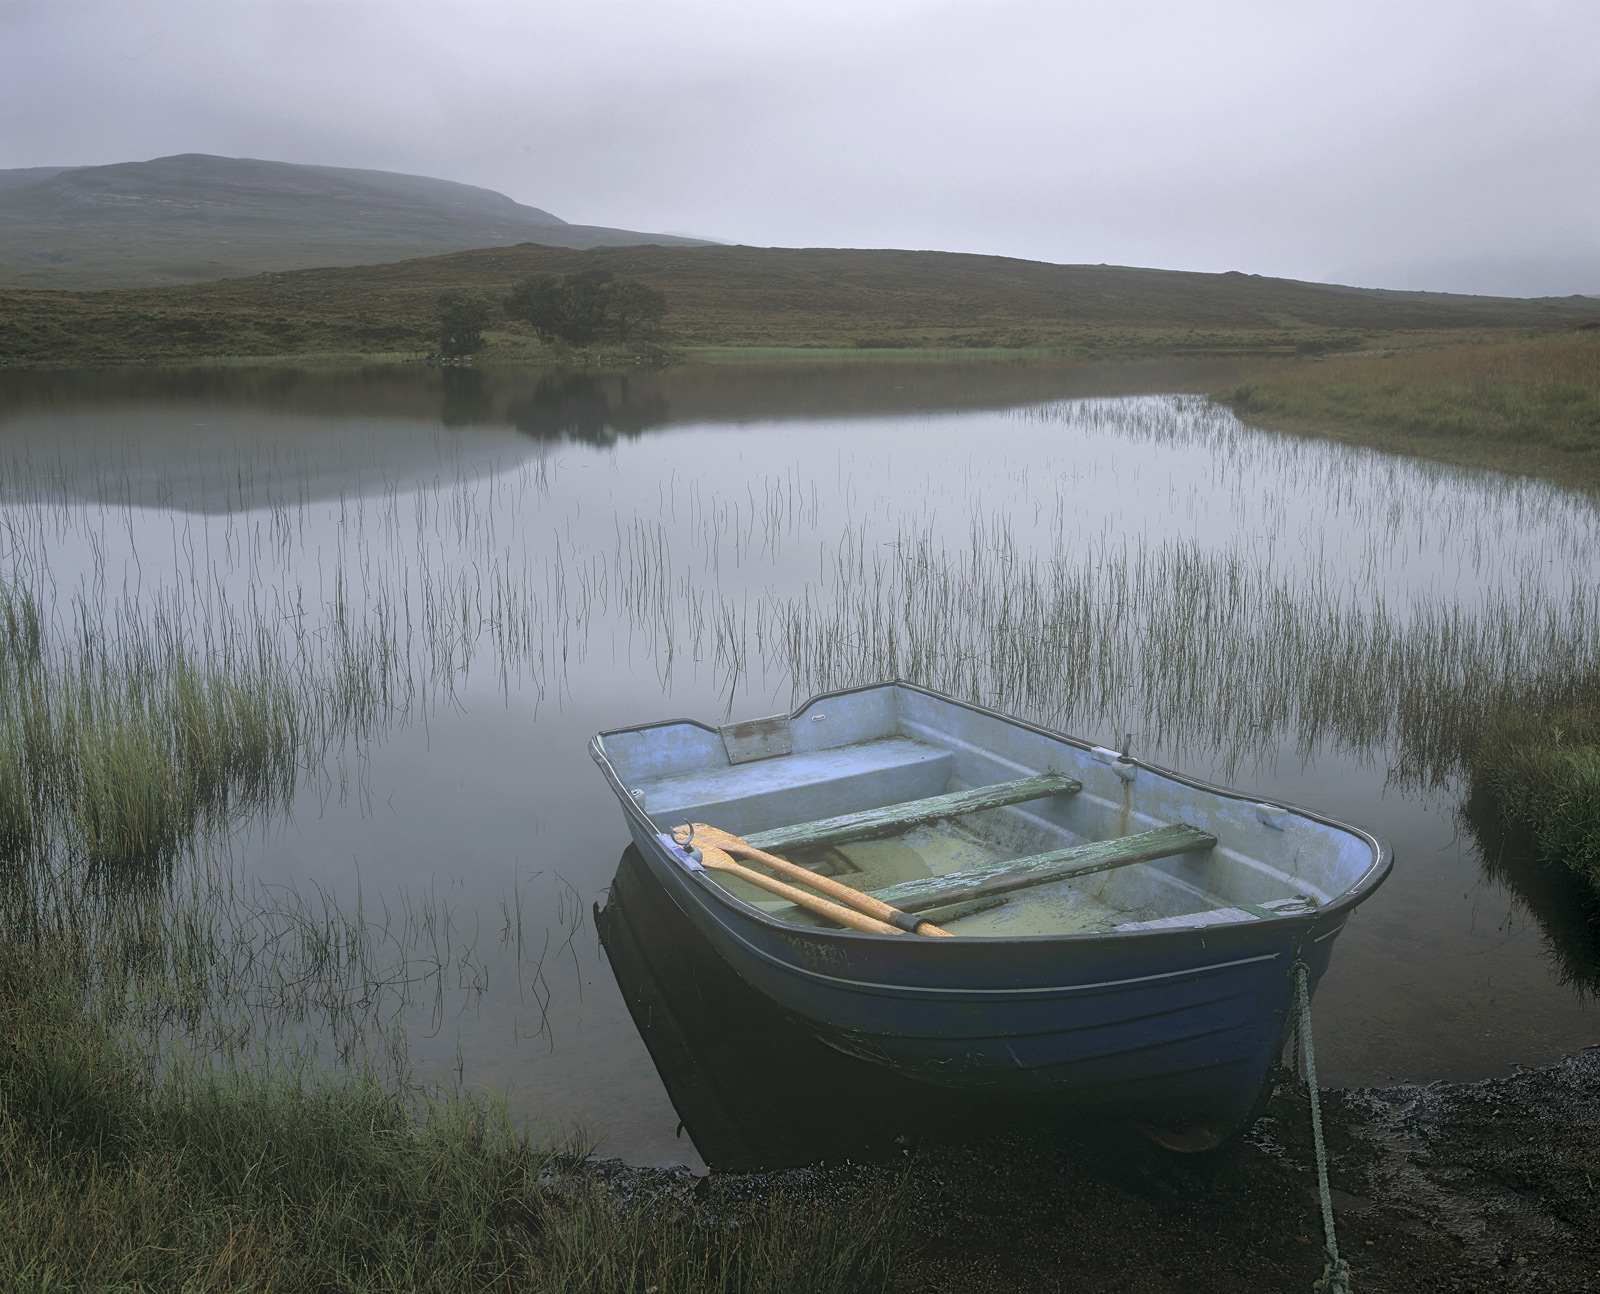 This little loch probablyseems a tiny bit sad and dreary and the wee blue row boat with its peeling paint adds to the sense...